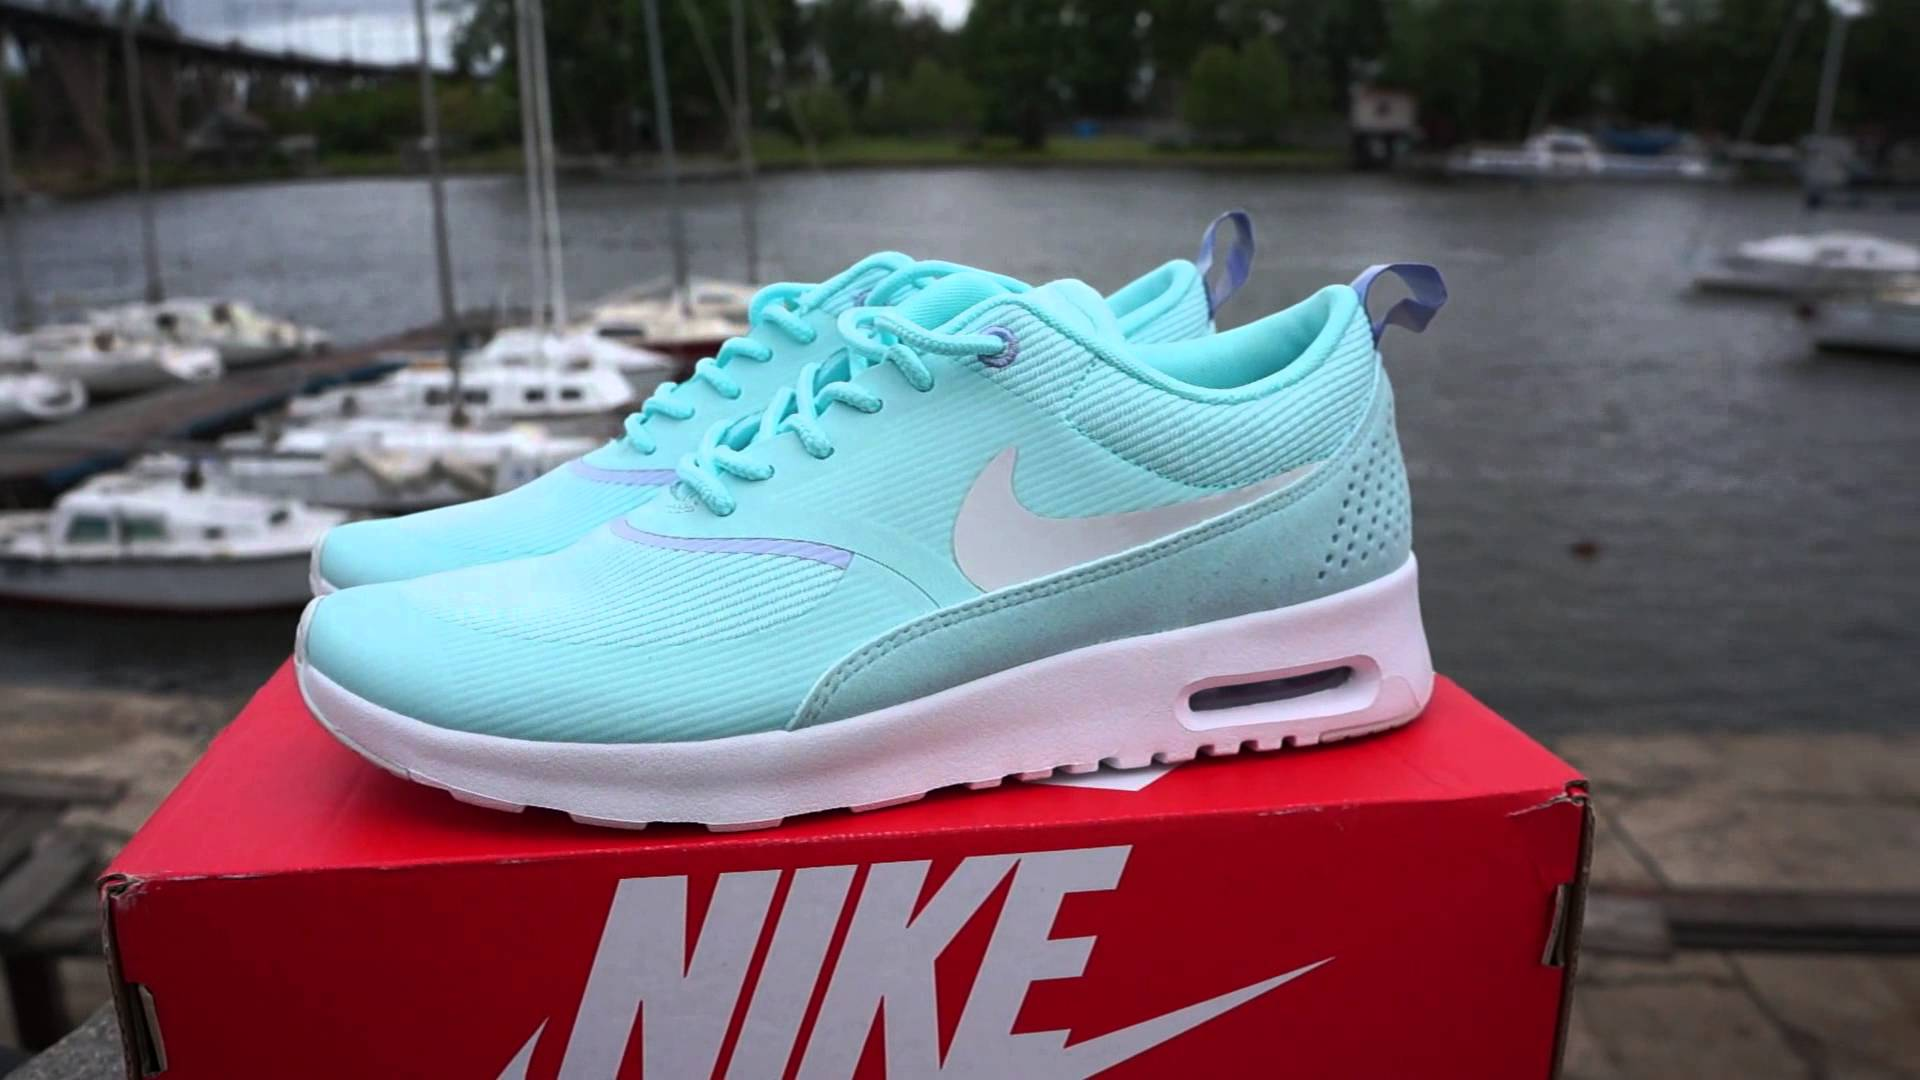 Norway Air Max Thea Aliexpress 17bbb A8af3